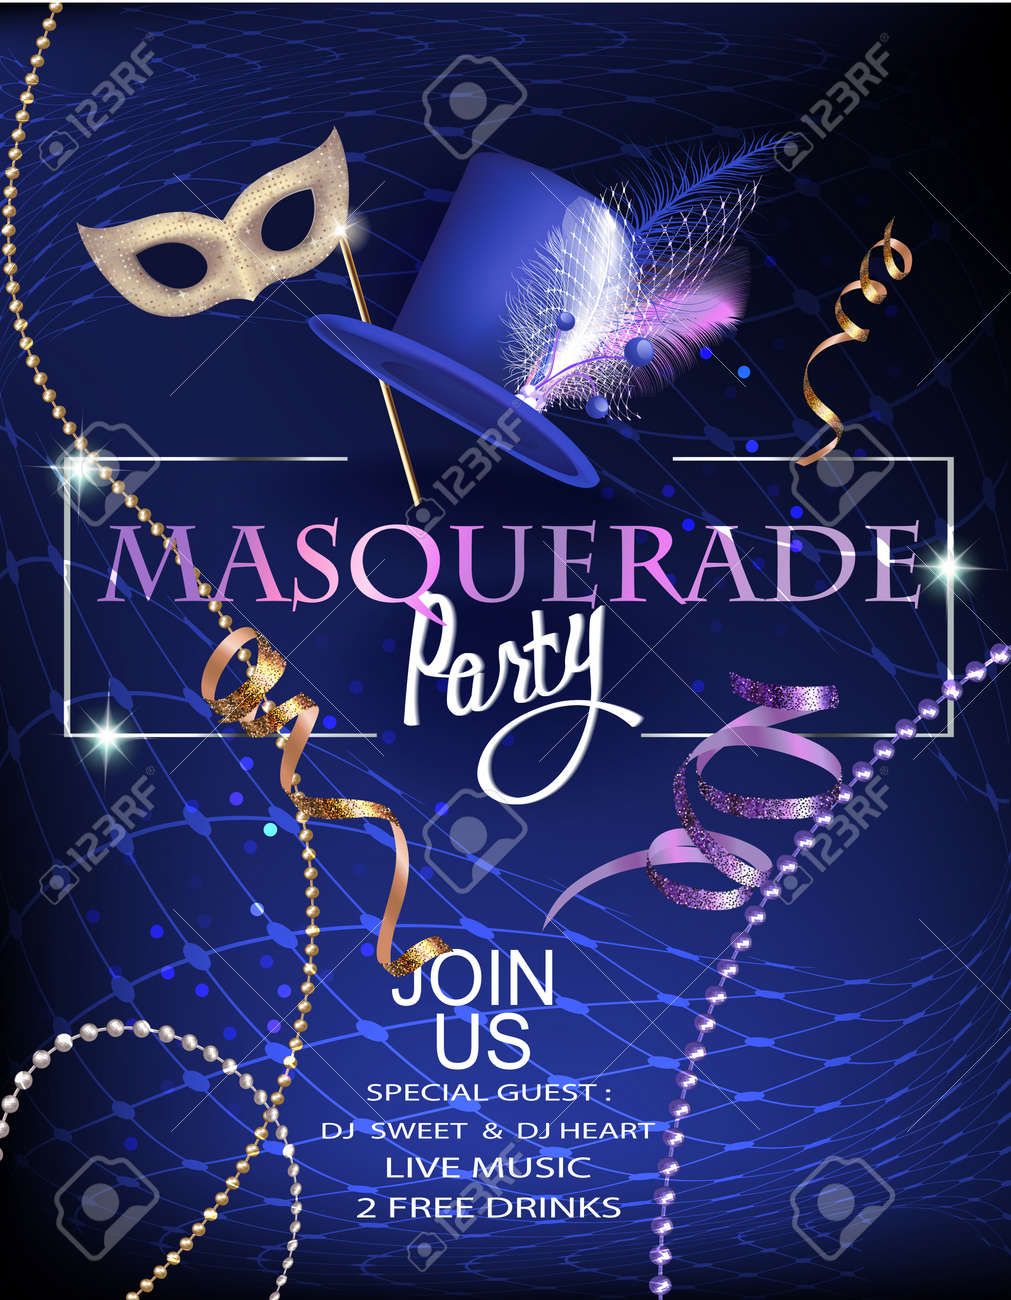 Masquerade Party Invitation With Beads Decorated Hat And Mask